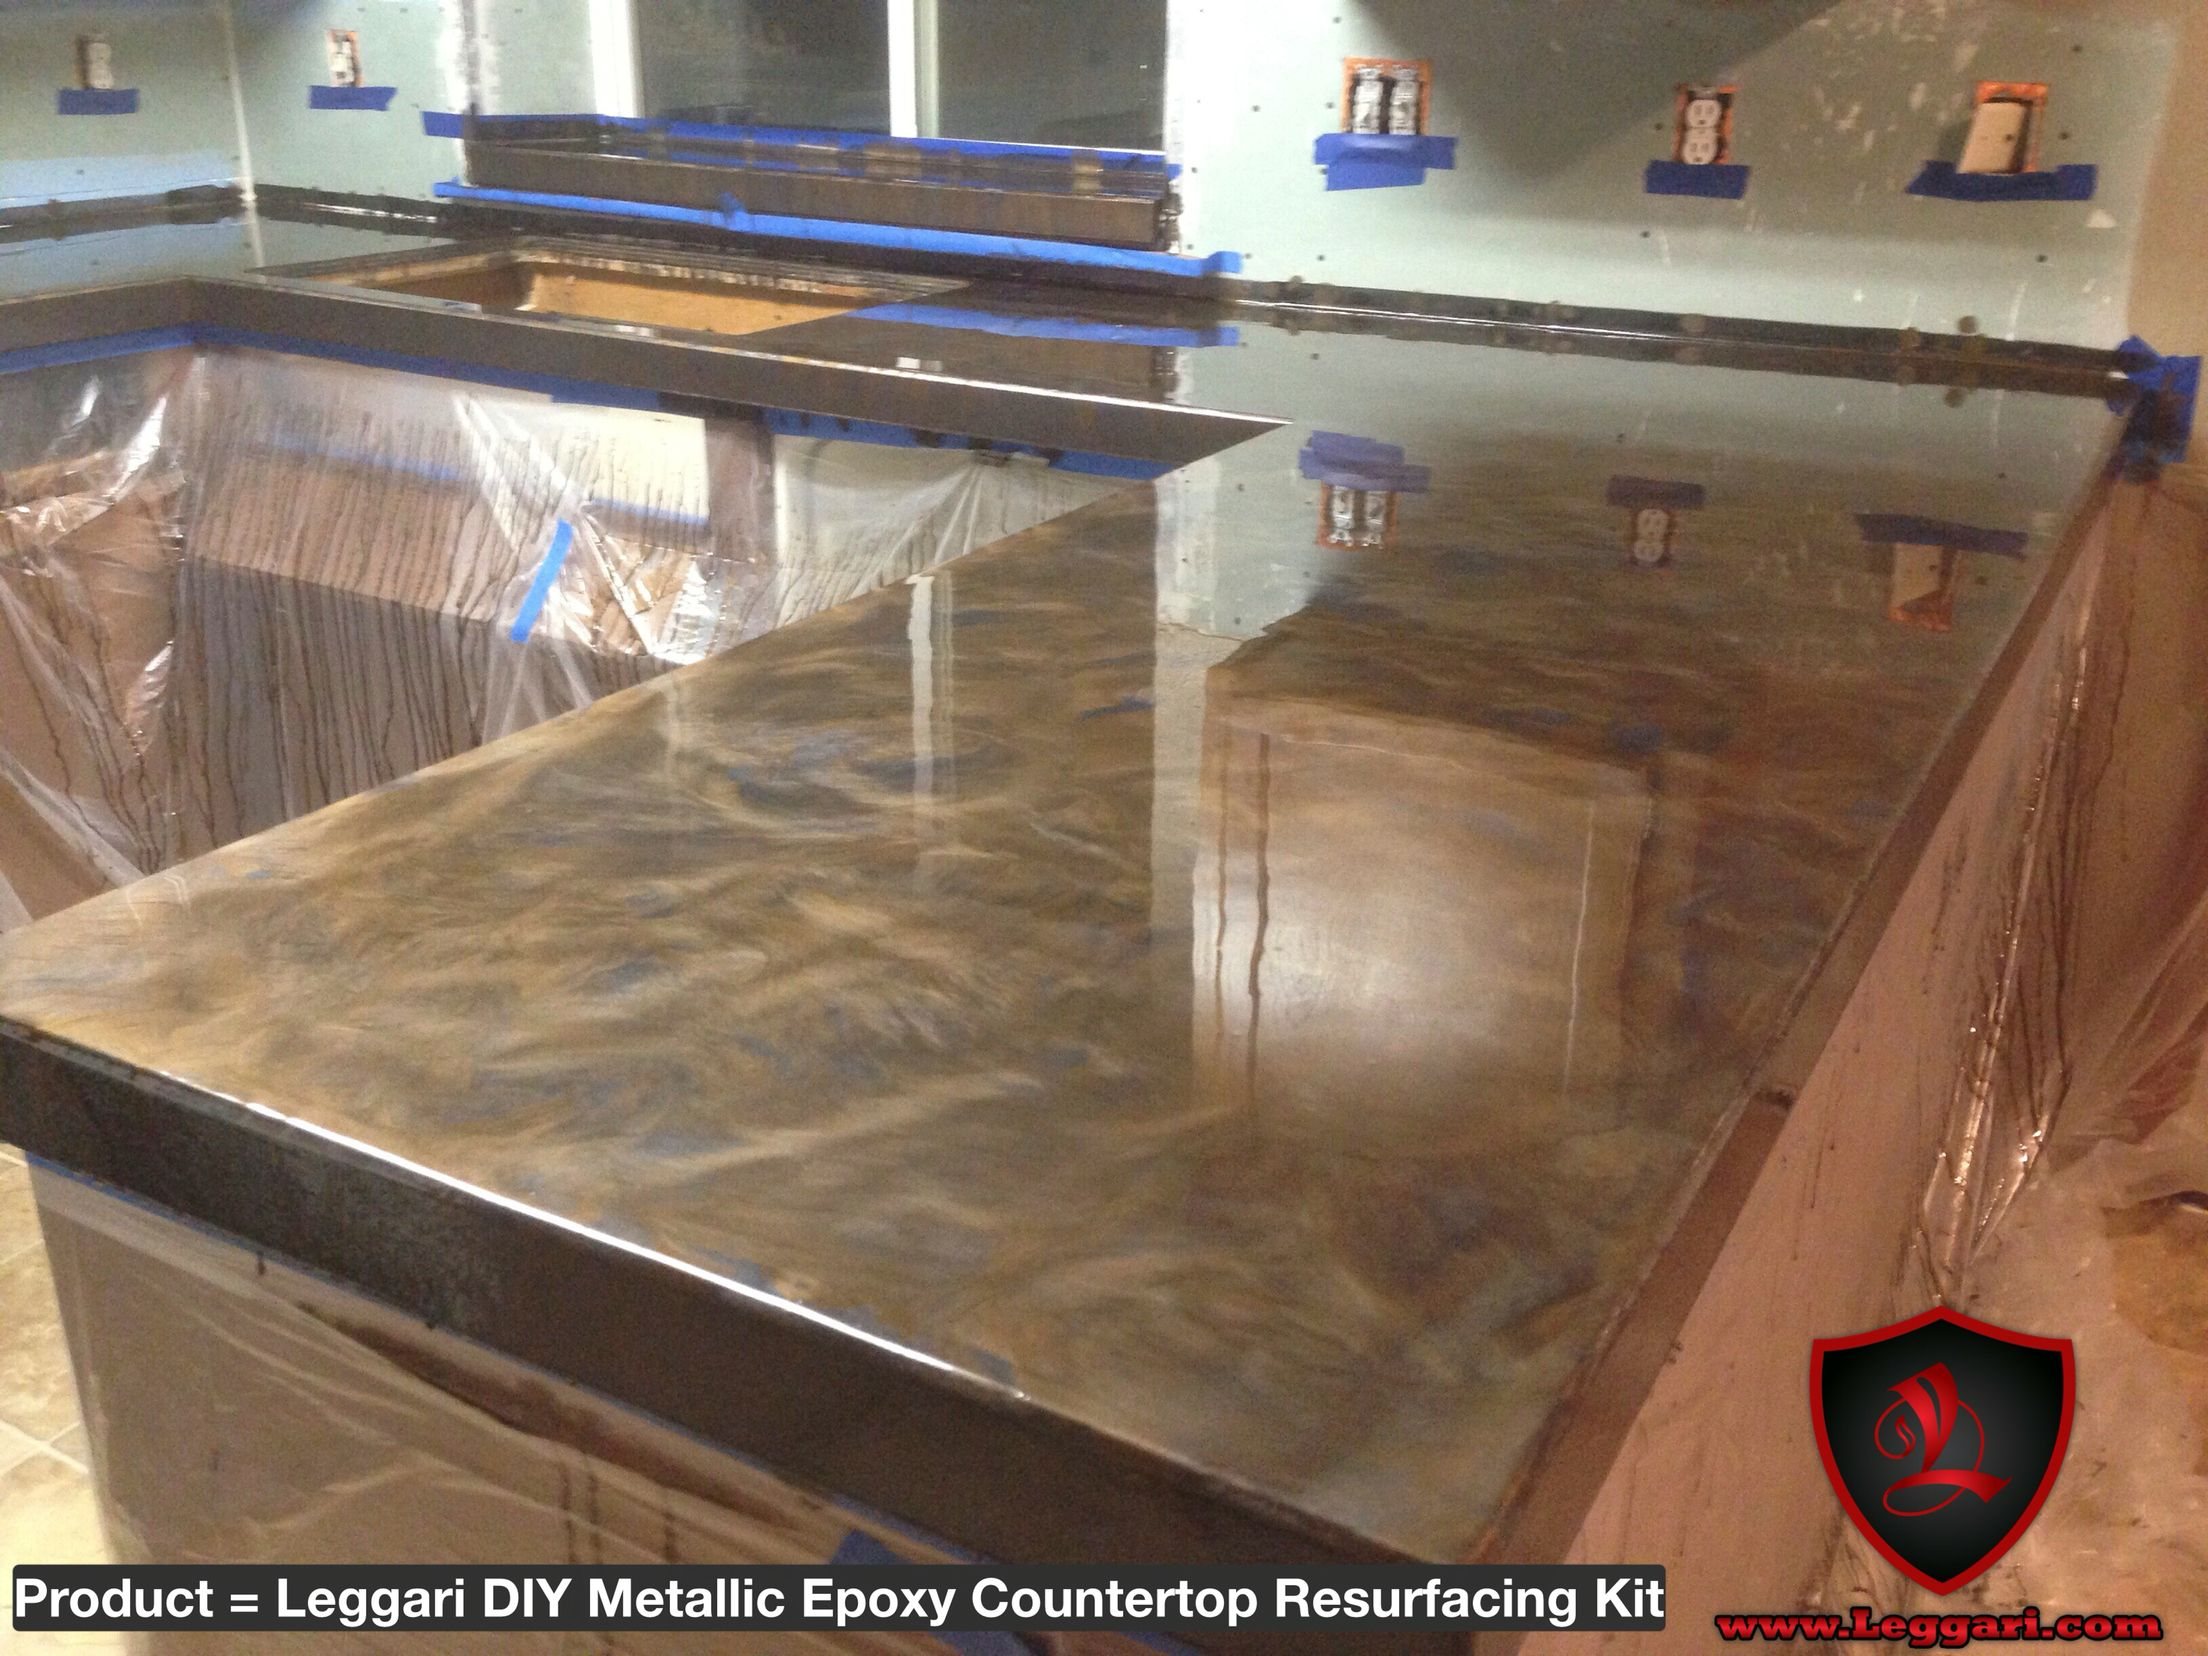 Resurface Countertop Kit Diy Metallic Epoxy Countertop Resurfacing Kits Are